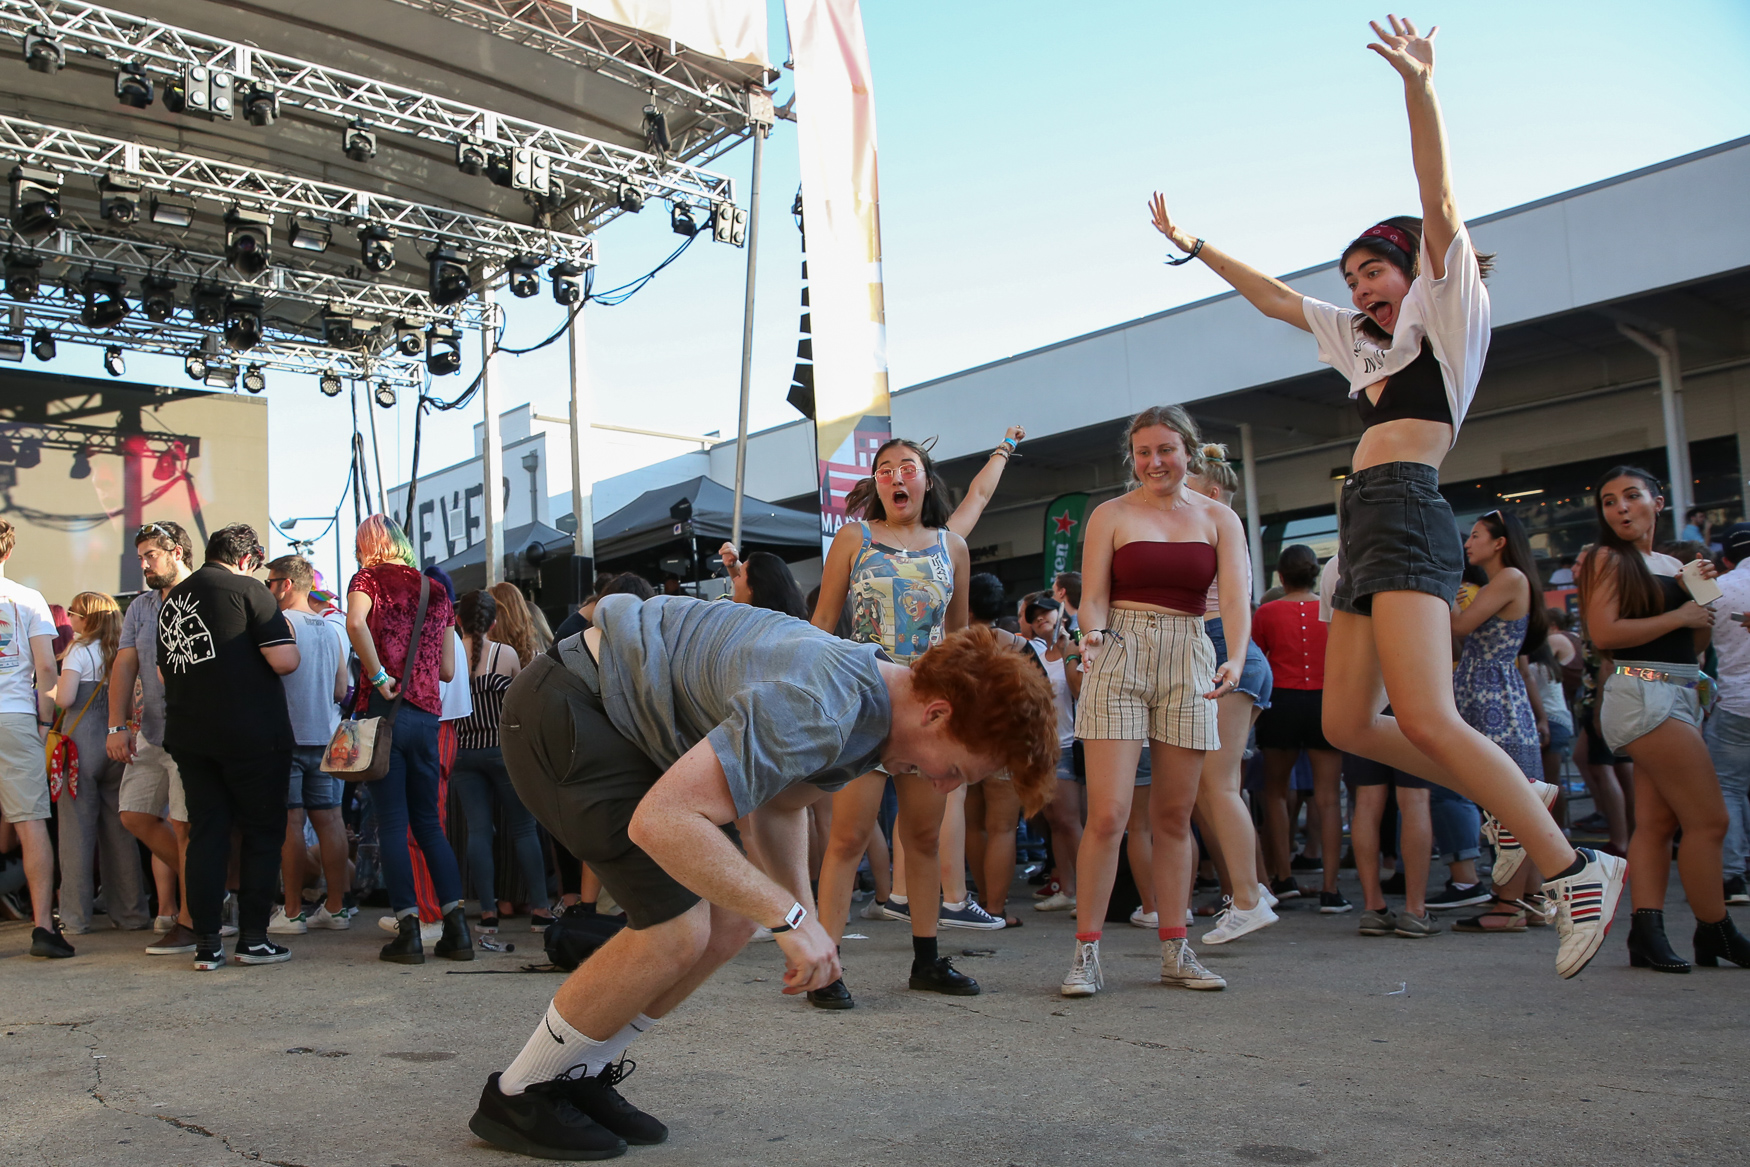 Hundreds of people came out to dance the weekend away at All Things Go Fall Classic, D.C.'s homegrown music festival. The two-day at Union Market event featured an all-female lineup on day one, but day two included acts like Betty Who, Carly Rae Jepsen and Misterwives. Guests also got to nosh on local food and{ } participate in art projects. (Amanda Andrade-Rhoades/DC Refined)